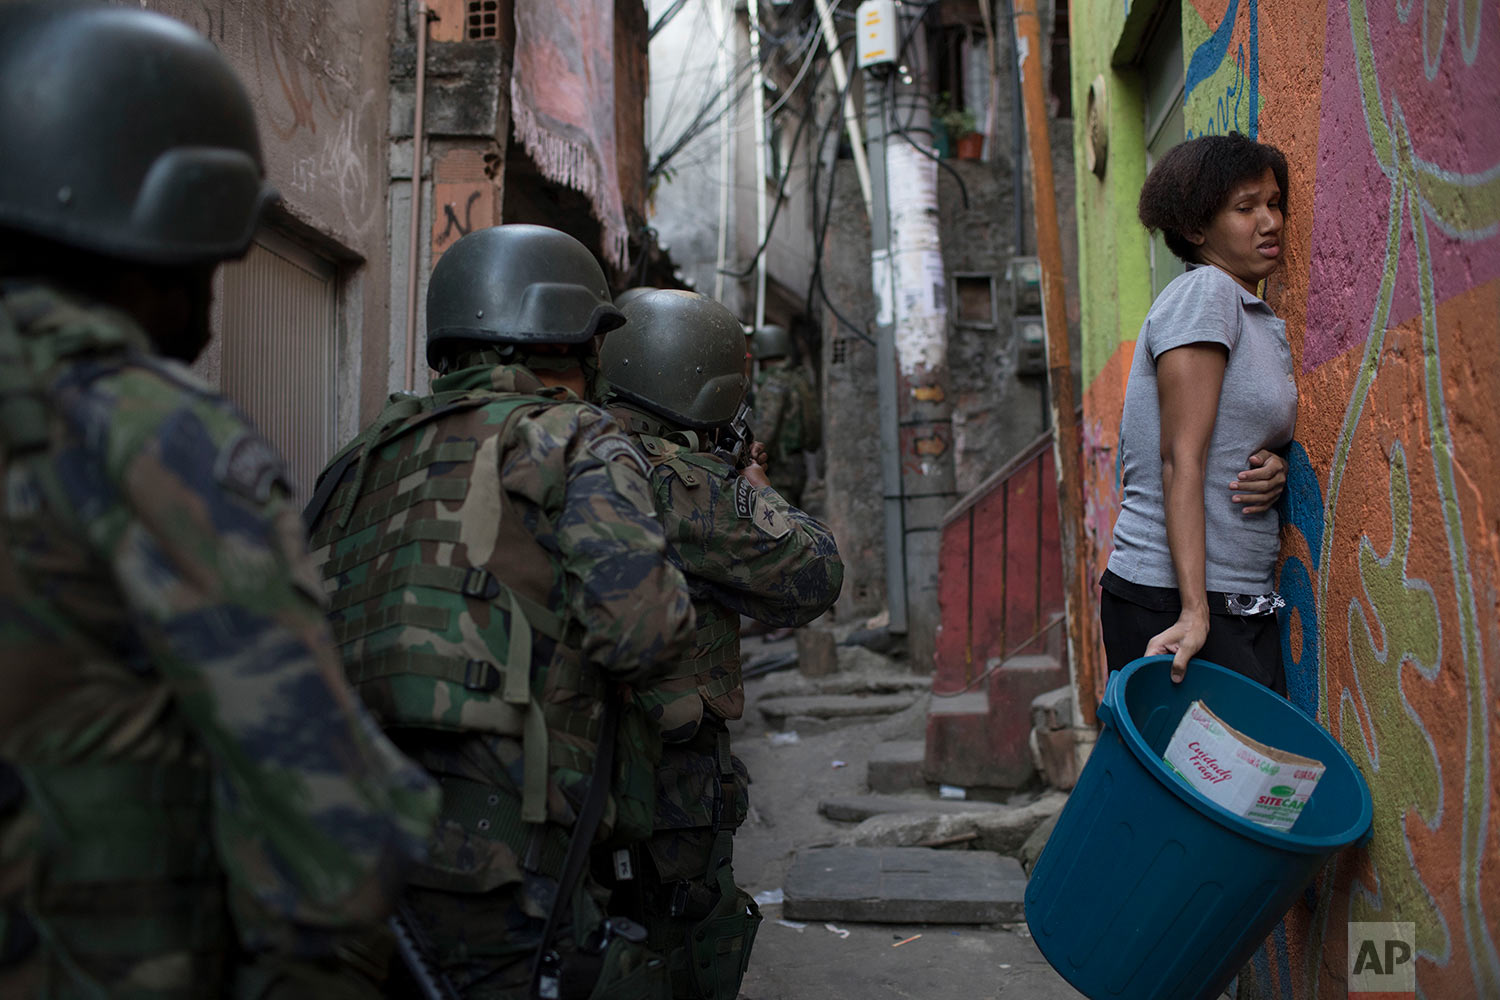 A woman presses herself against the wall as soldiers patrol an alley in Rocinha slum in Rio de Janeiro, Brazil, Friday, Sept. 22, 2017. Shootouts erupted in several areas of Rio de Janeiro on Friday, prompting Brazilian authorities to shut roads, close schools and ask for the army to intervene. (AP Photo/Leo Correa)